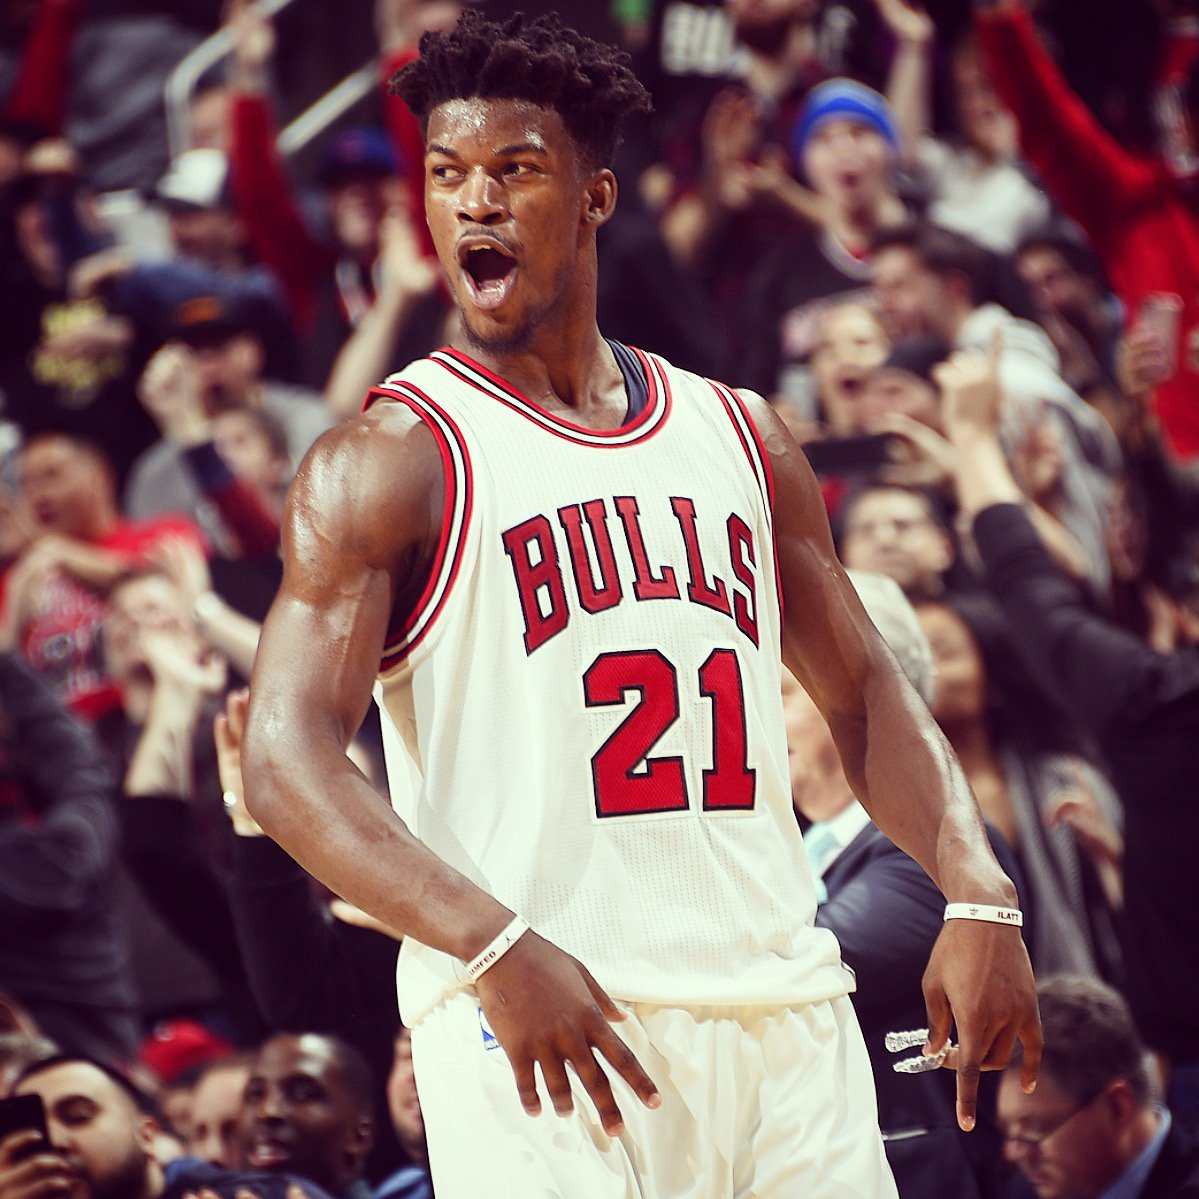 1 RT = 1 VOTE  Come on #BullsNation, let's send @JimmyButler to the All-Star game! #NBAVote https://t.co/FCD2oAaQAW